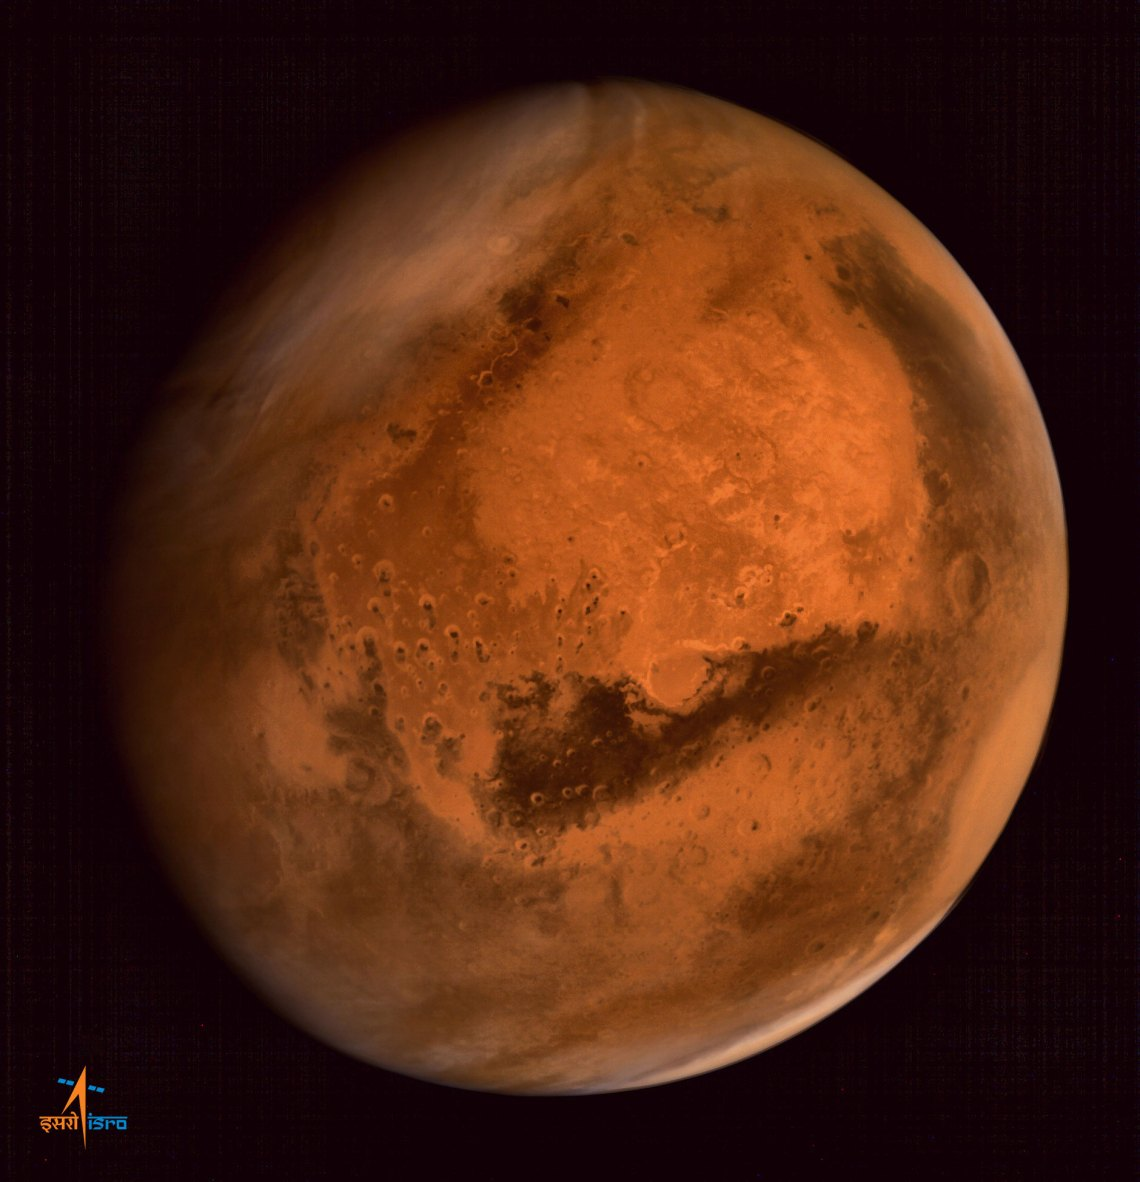 Regional dust storm activities over northern hemisphere of Mars - captured by the ISRO's Mars Orbiter Mission. The image was taken from an altitude of 74500 km from the surface of Mars. Credit: ISRO